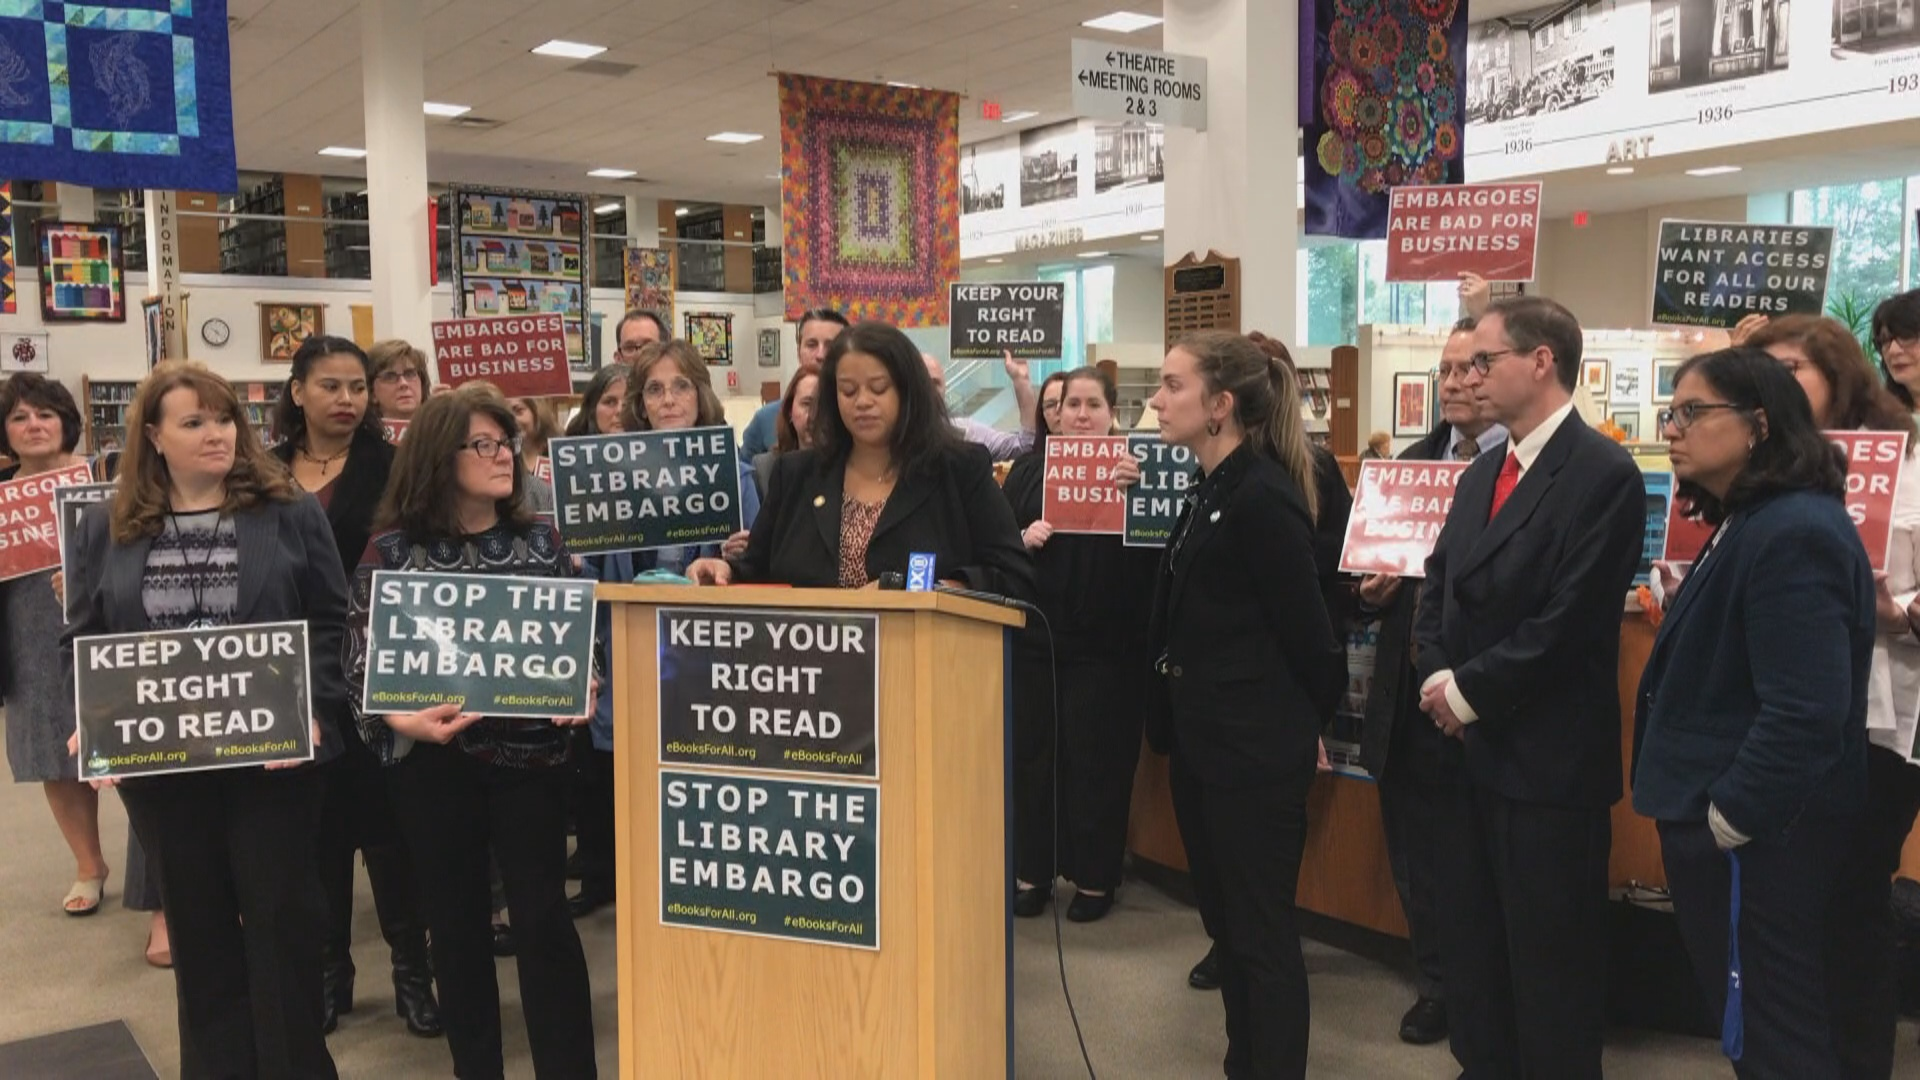 Solages Joins LI Library Leaders & Advocates to Denounce New e-book Licensing Model